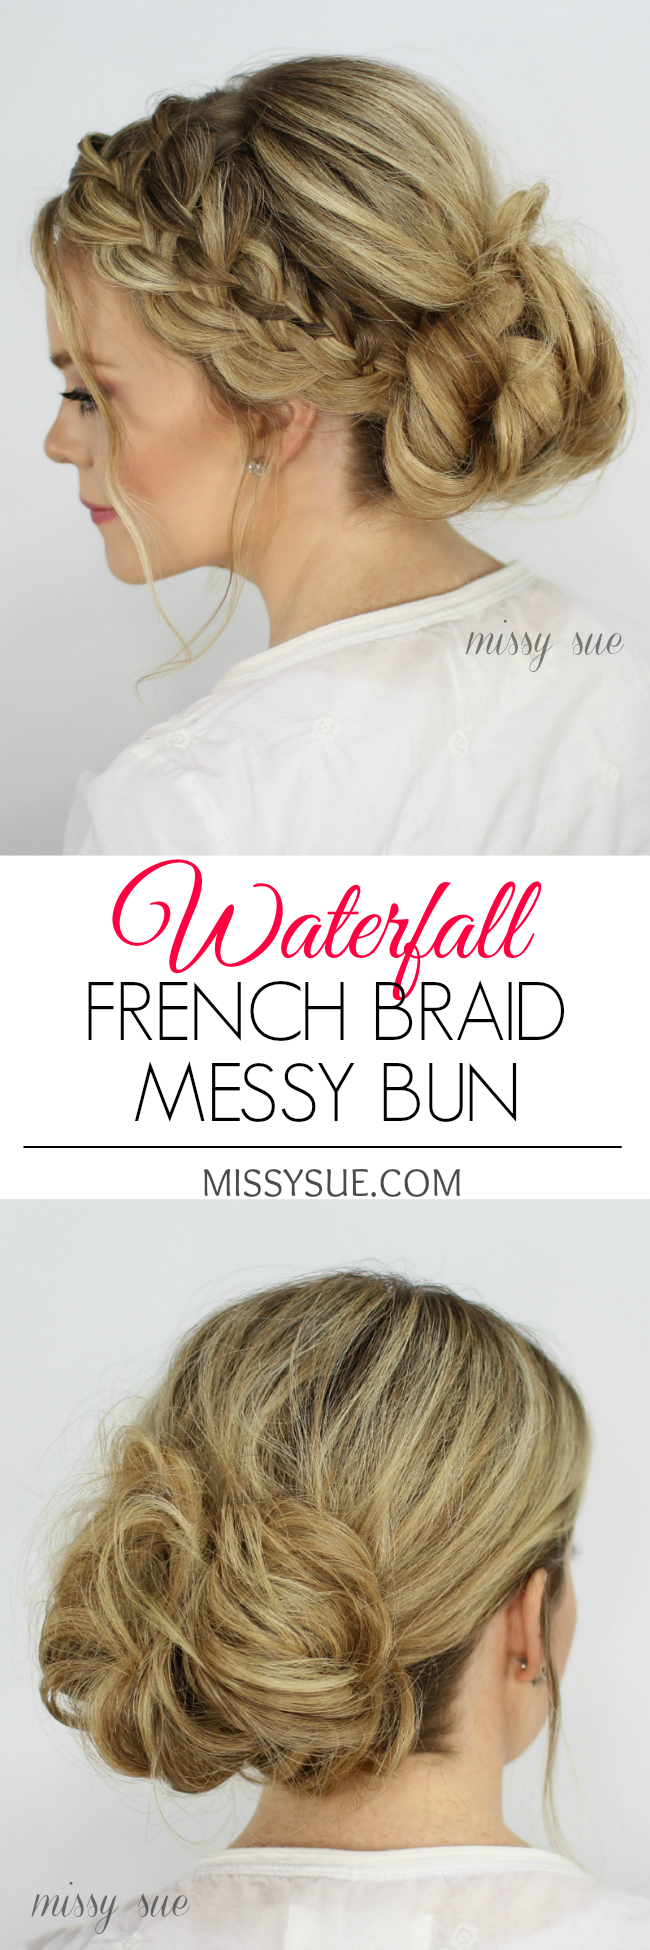 Waterfall French Braid Messy Bun | Waterfall french braid, Braided ...